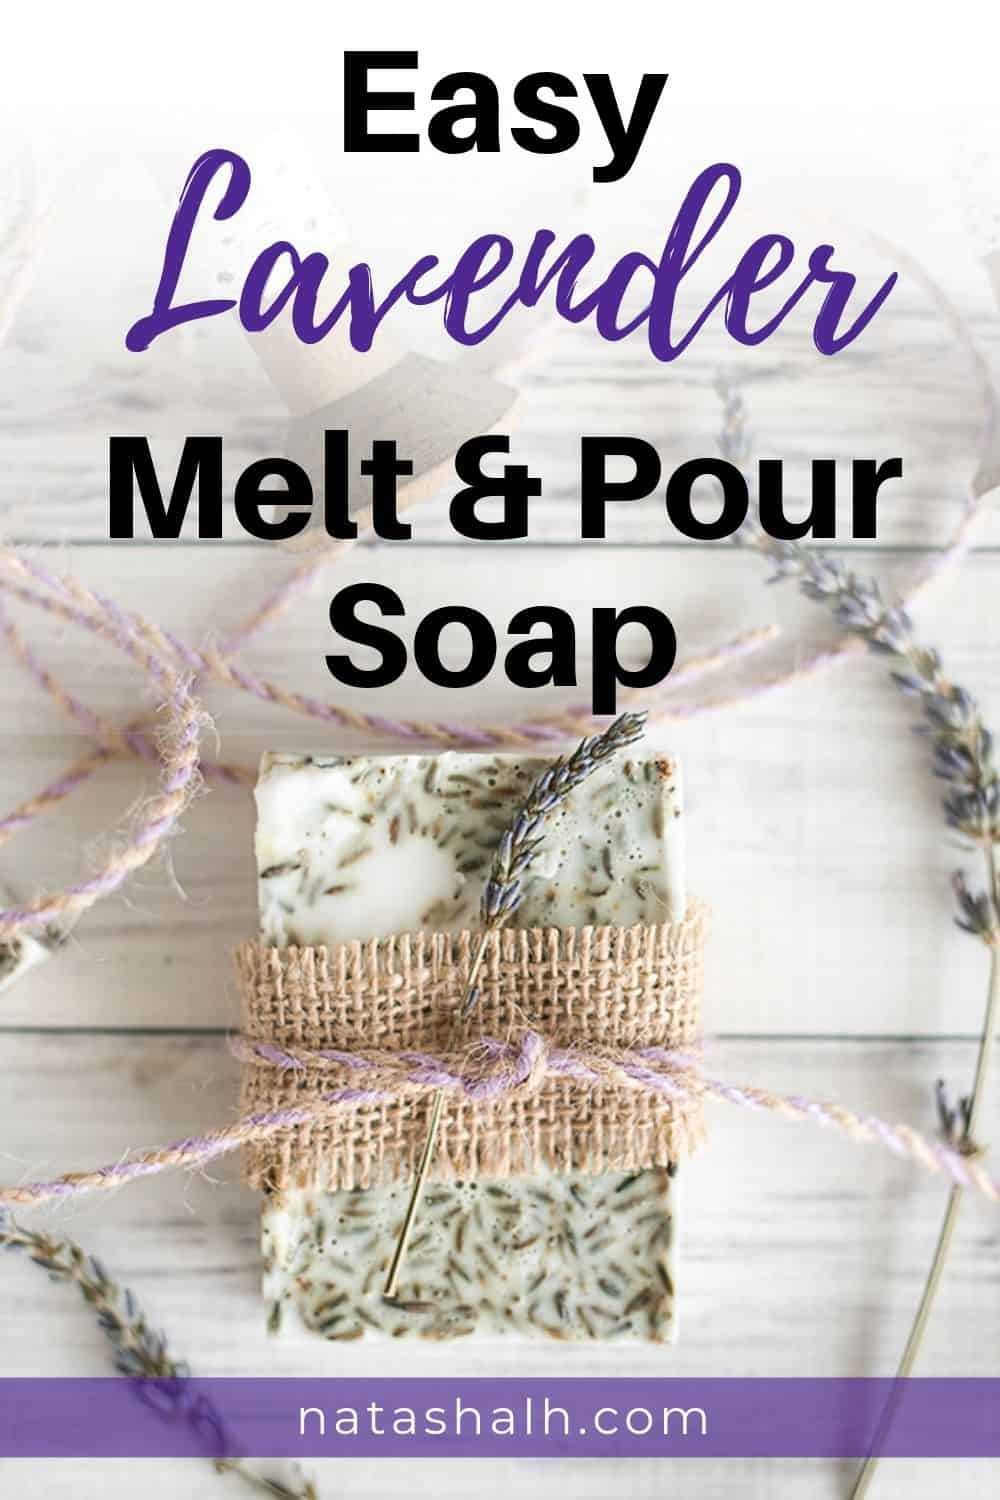 easy lavender melt and pour soap